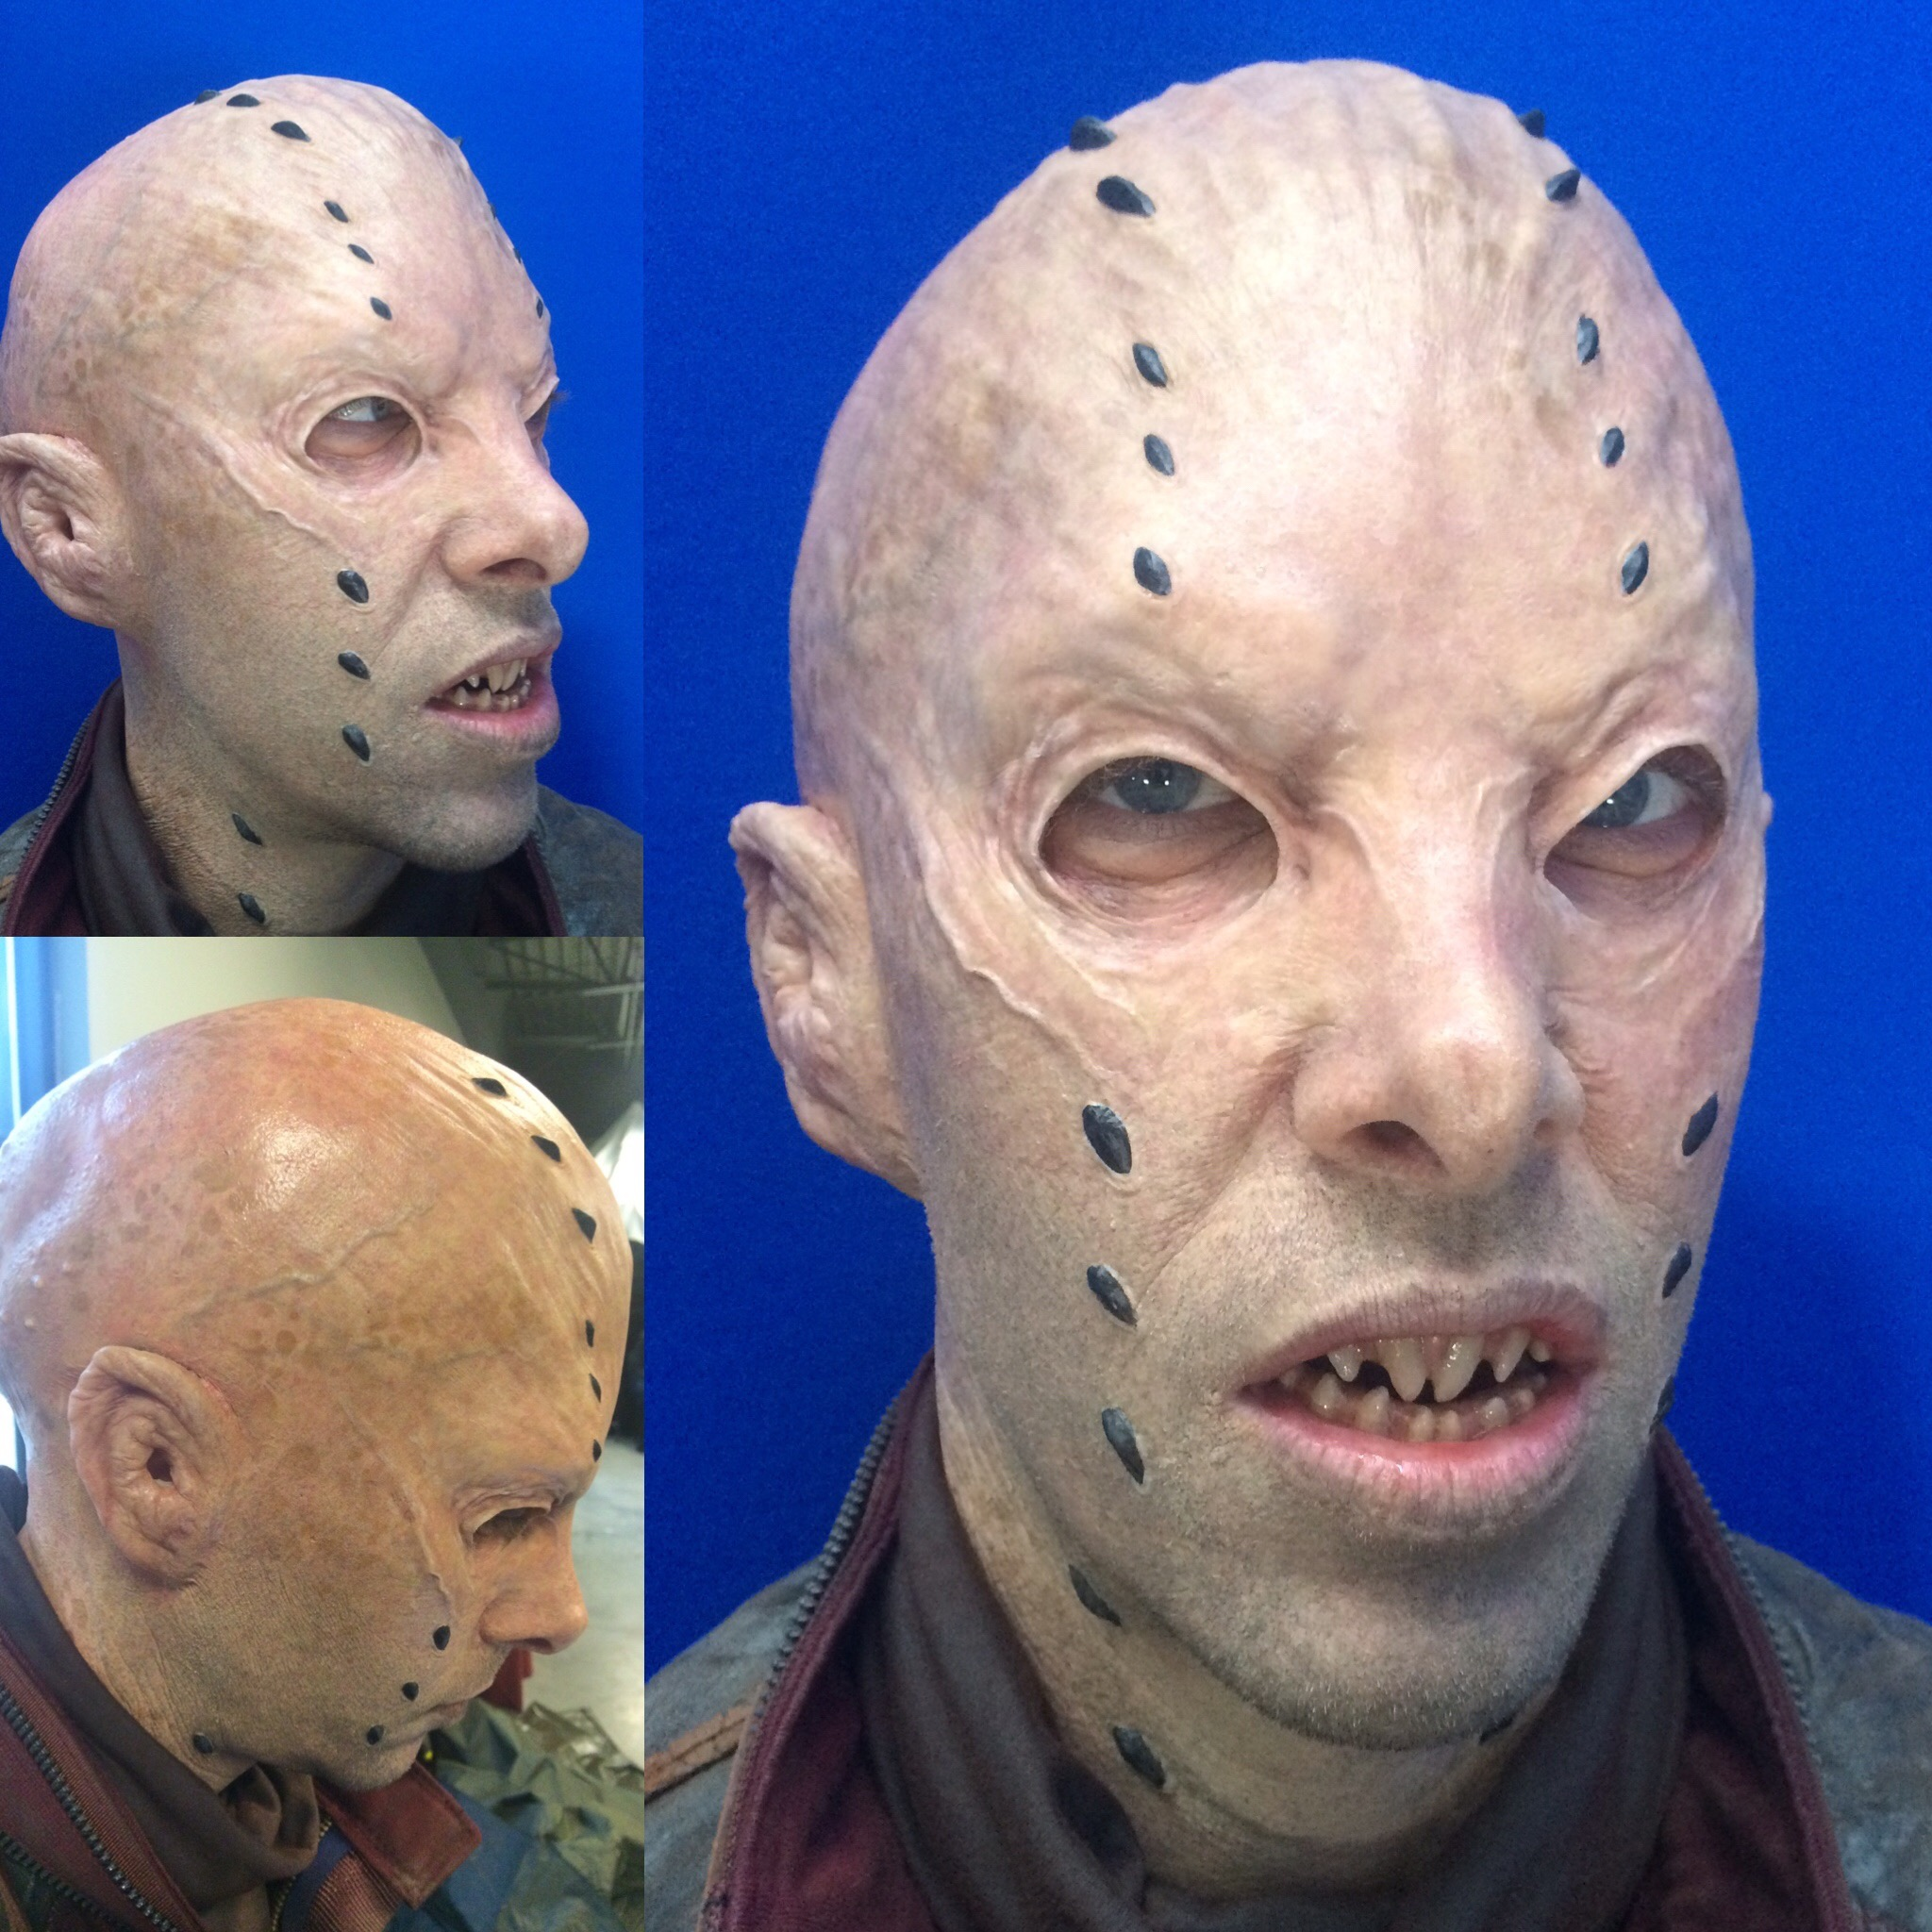 Prosthetics made by Legacy. Application only under the direction of Brian Sipe. Guardians of the Galaxy 2.